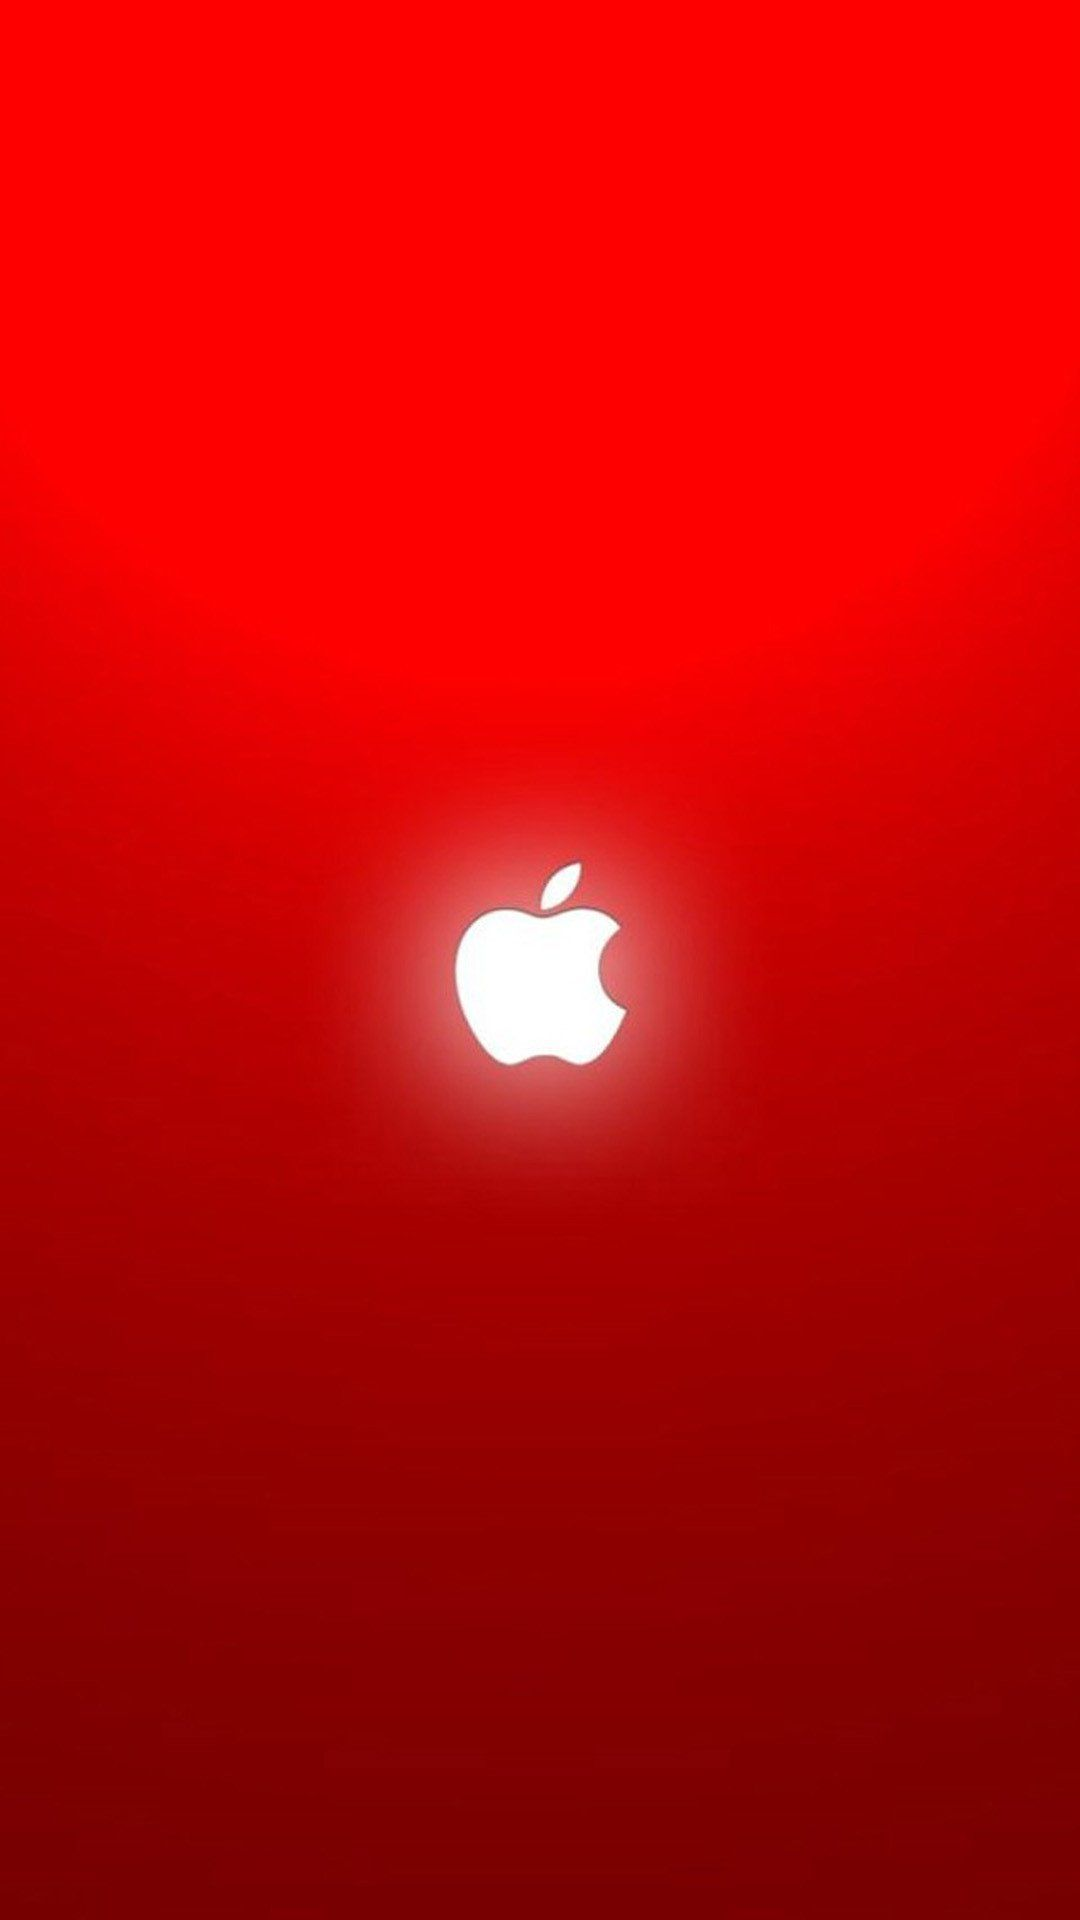 Iphone 11 Wallpaper Apple Logo Red Bright 4k Hd Download Free Hd Wallpaper Screensavers Dw Gaming Com Dow Sfondi Iphone Sfondi Per Iphone Sfondo Iphone